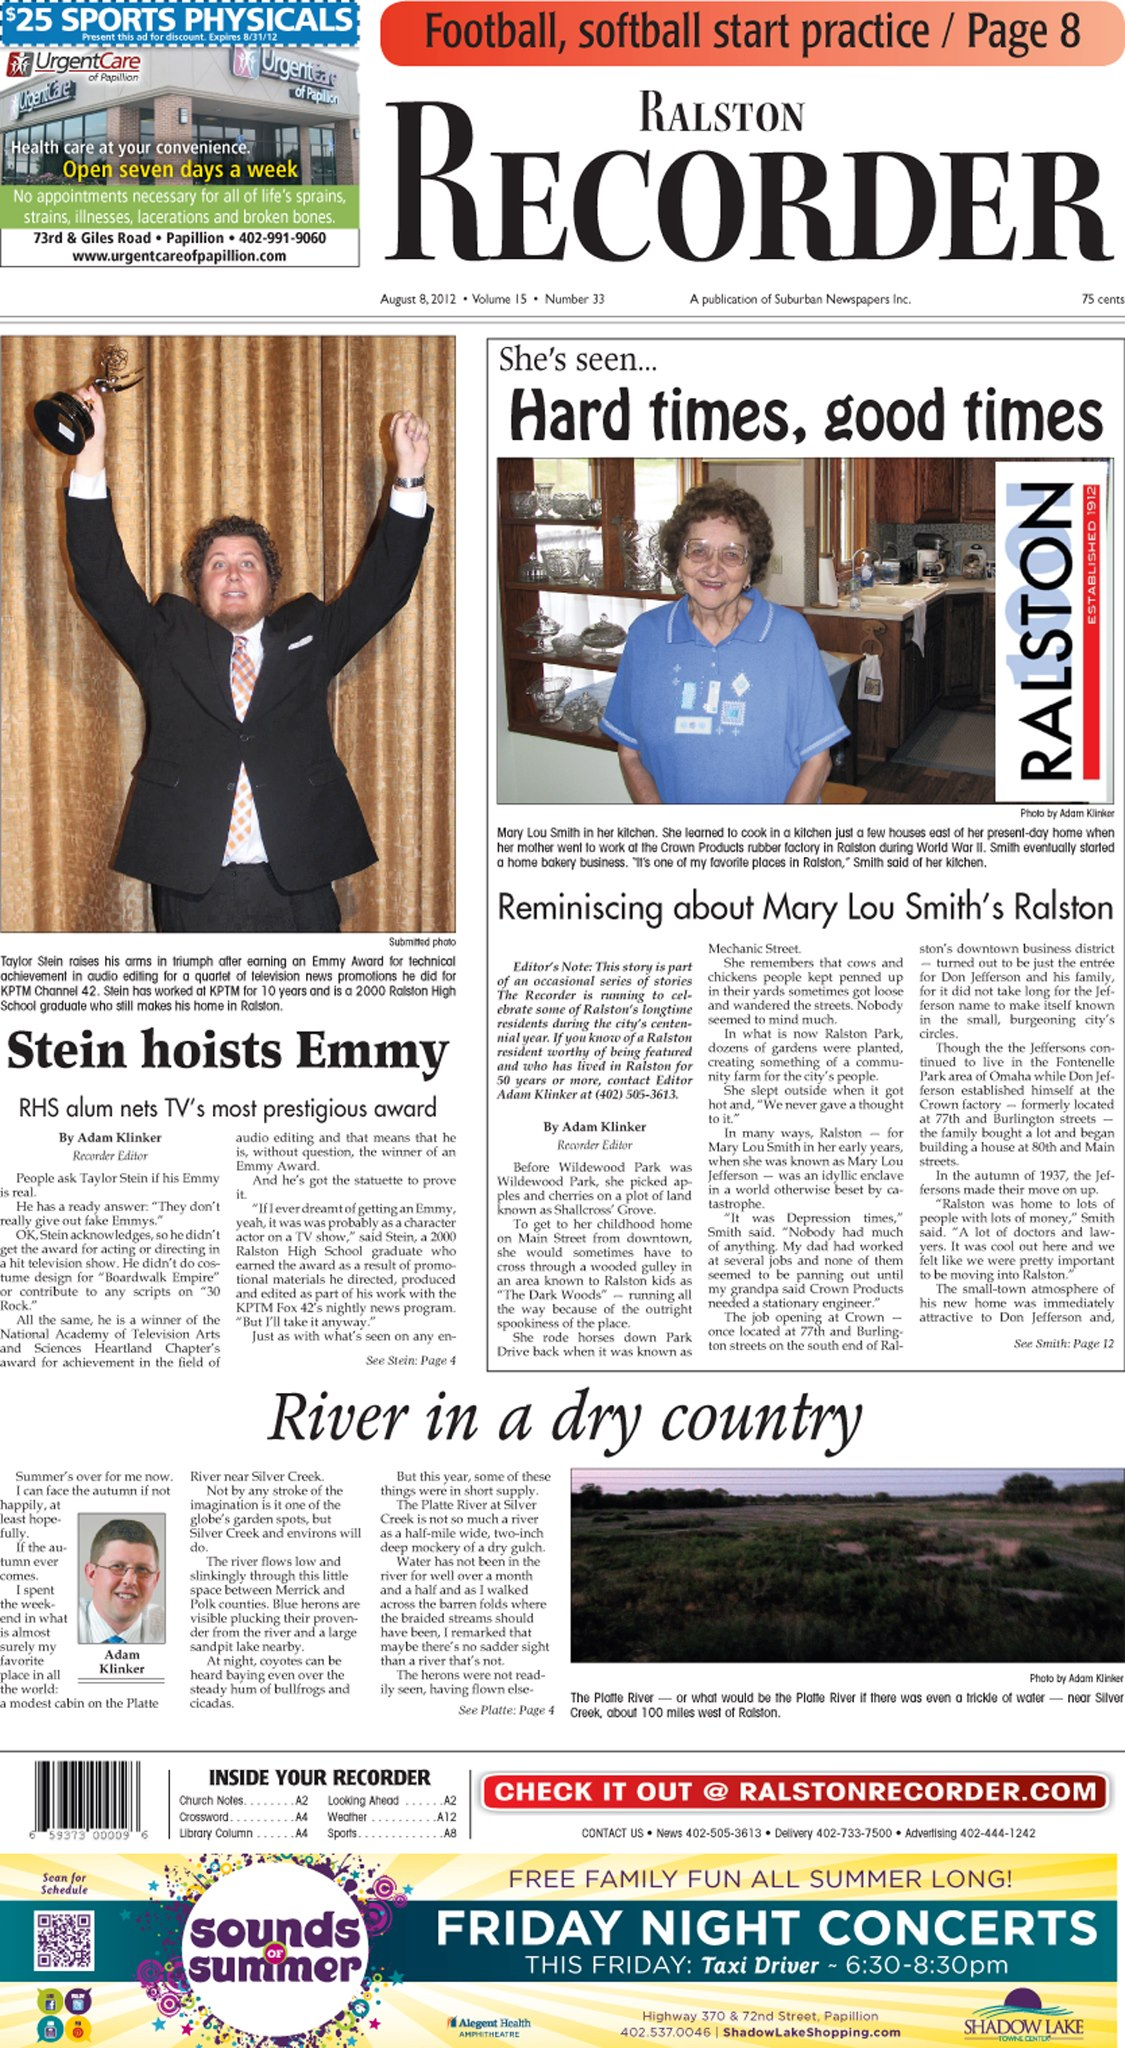 The front page of the Aug. 8, 2012, issue of The Ralston Recorder, under Adam Klinker's editorship. (Frank and Velma Johnson Ralston Archives Museum)